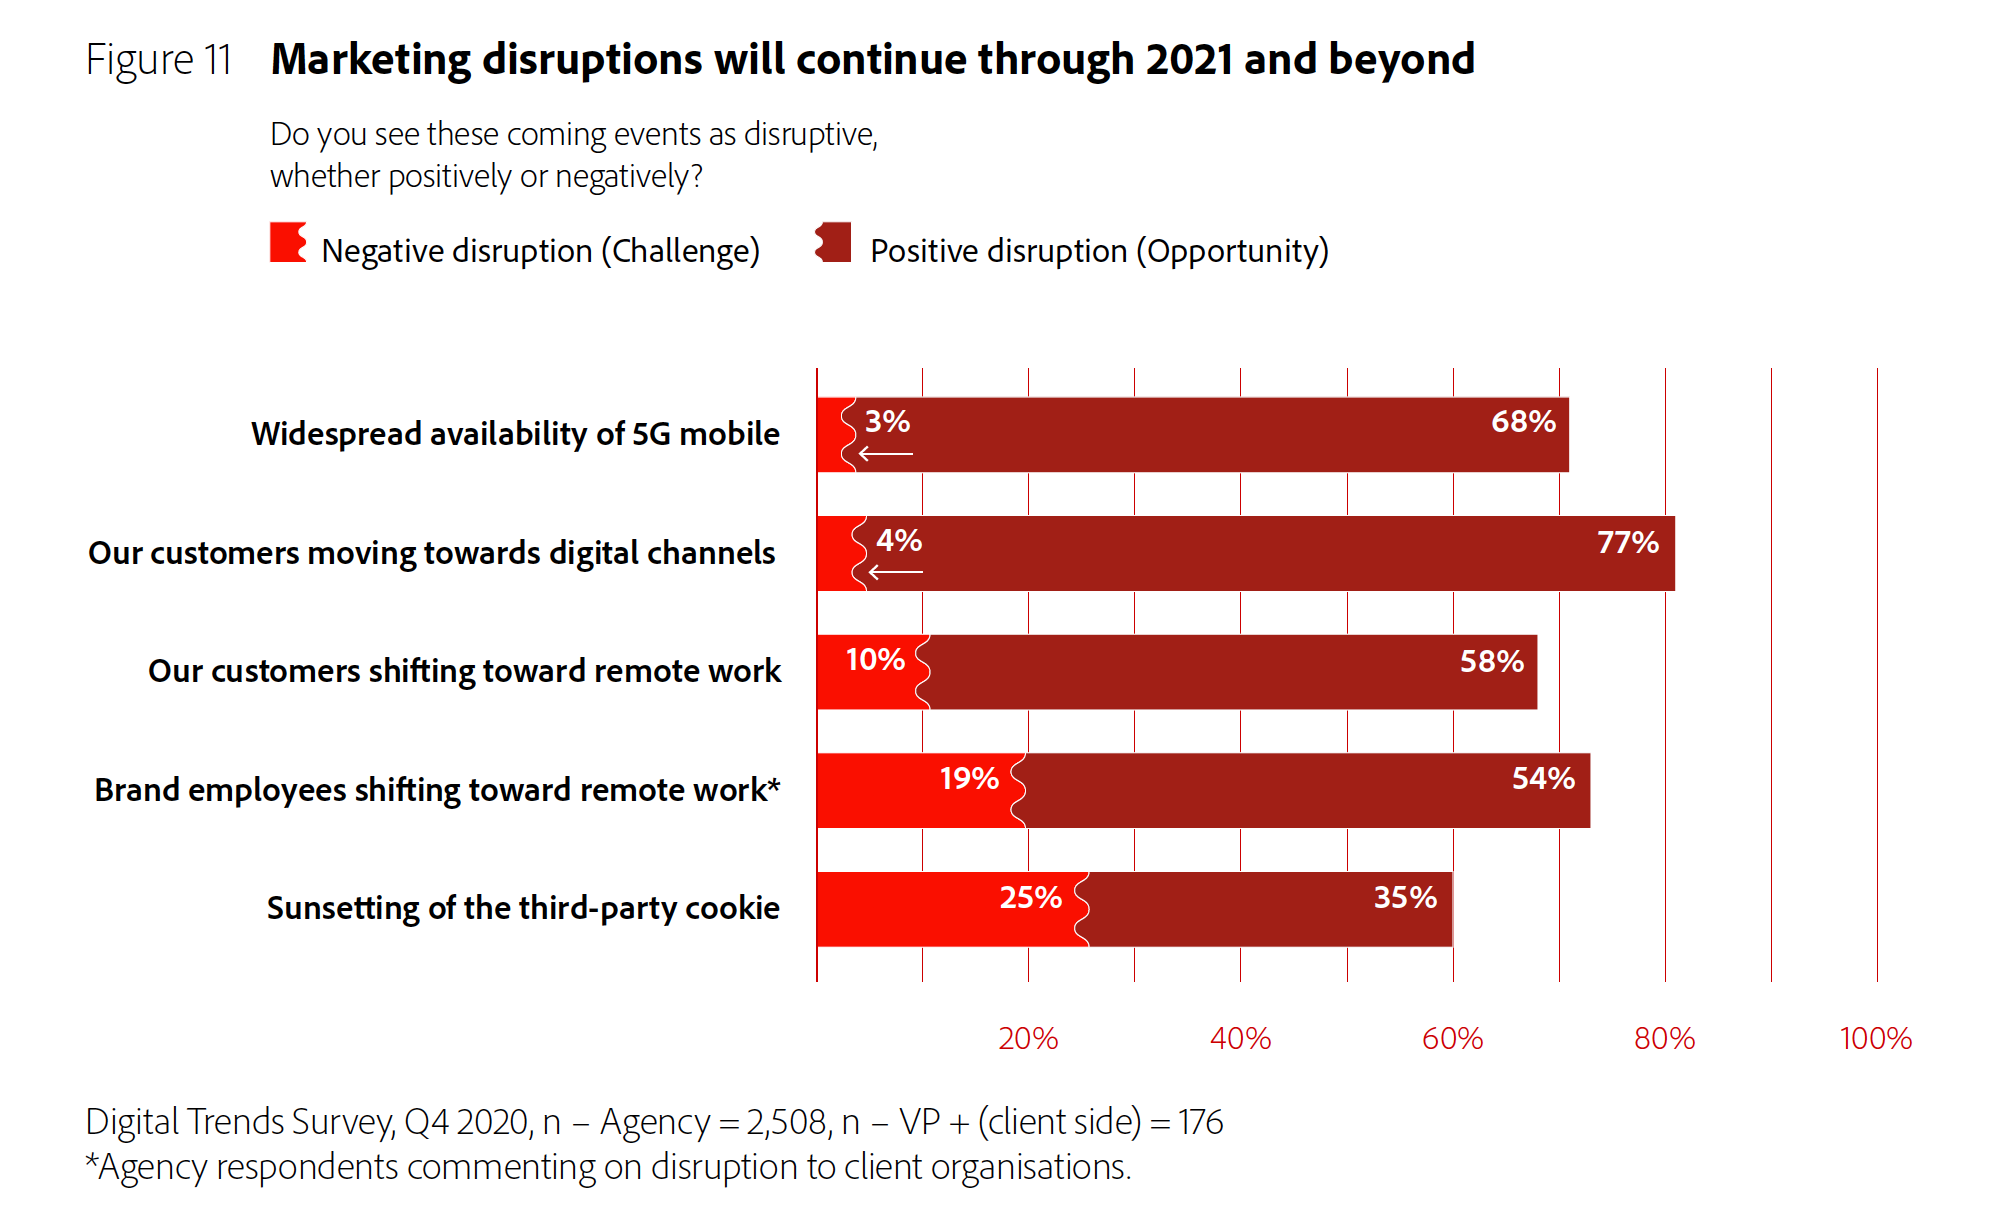 Figure 11: Marketing disruptions will continue through 2021 and beyond.